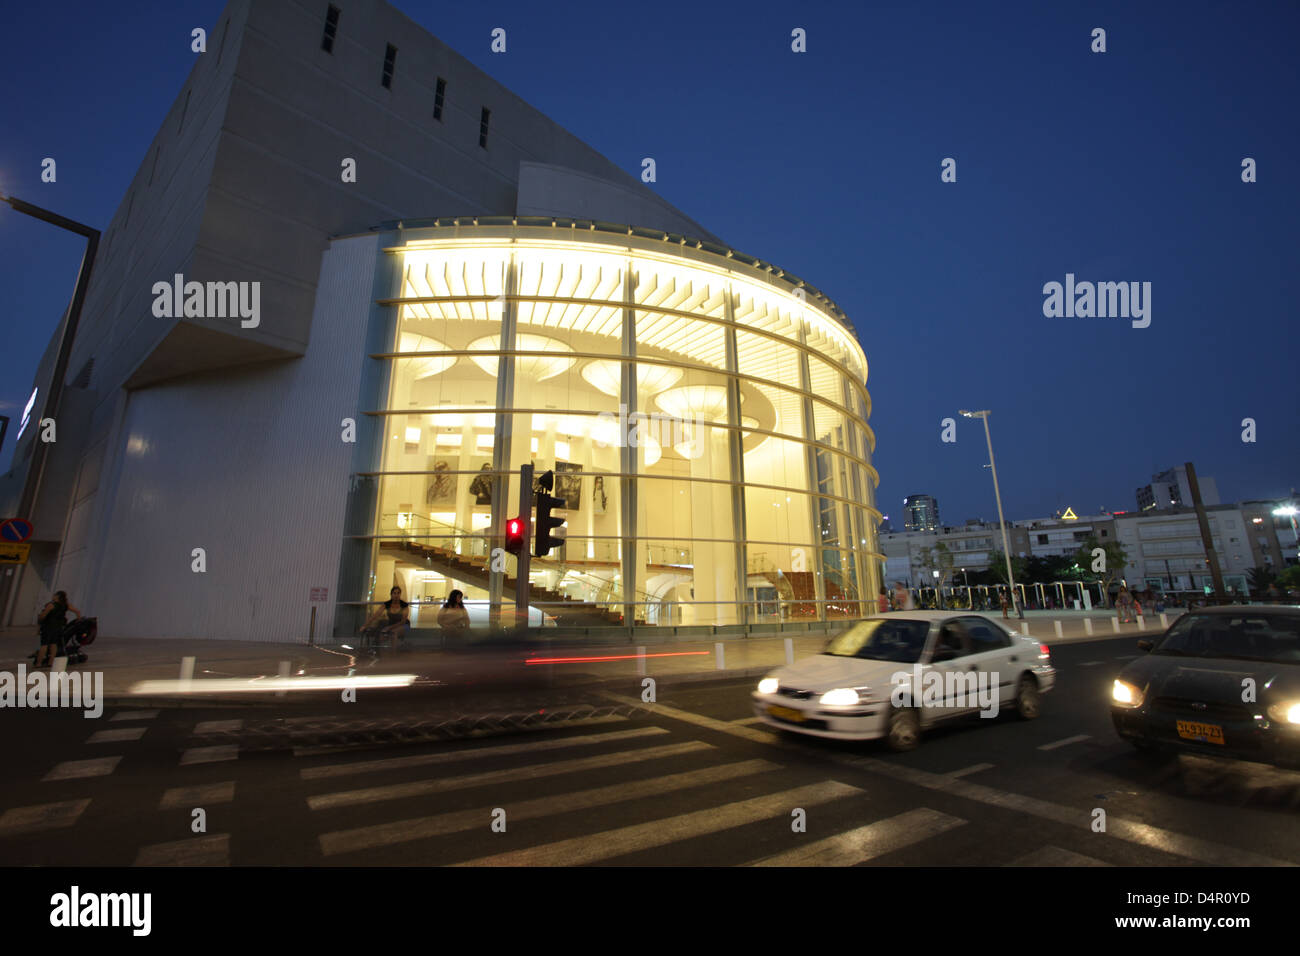 Israel, Tel Aviv The reconstructed building of Habimah, Israel's National Theatre at night (October 2012) - Stock Image